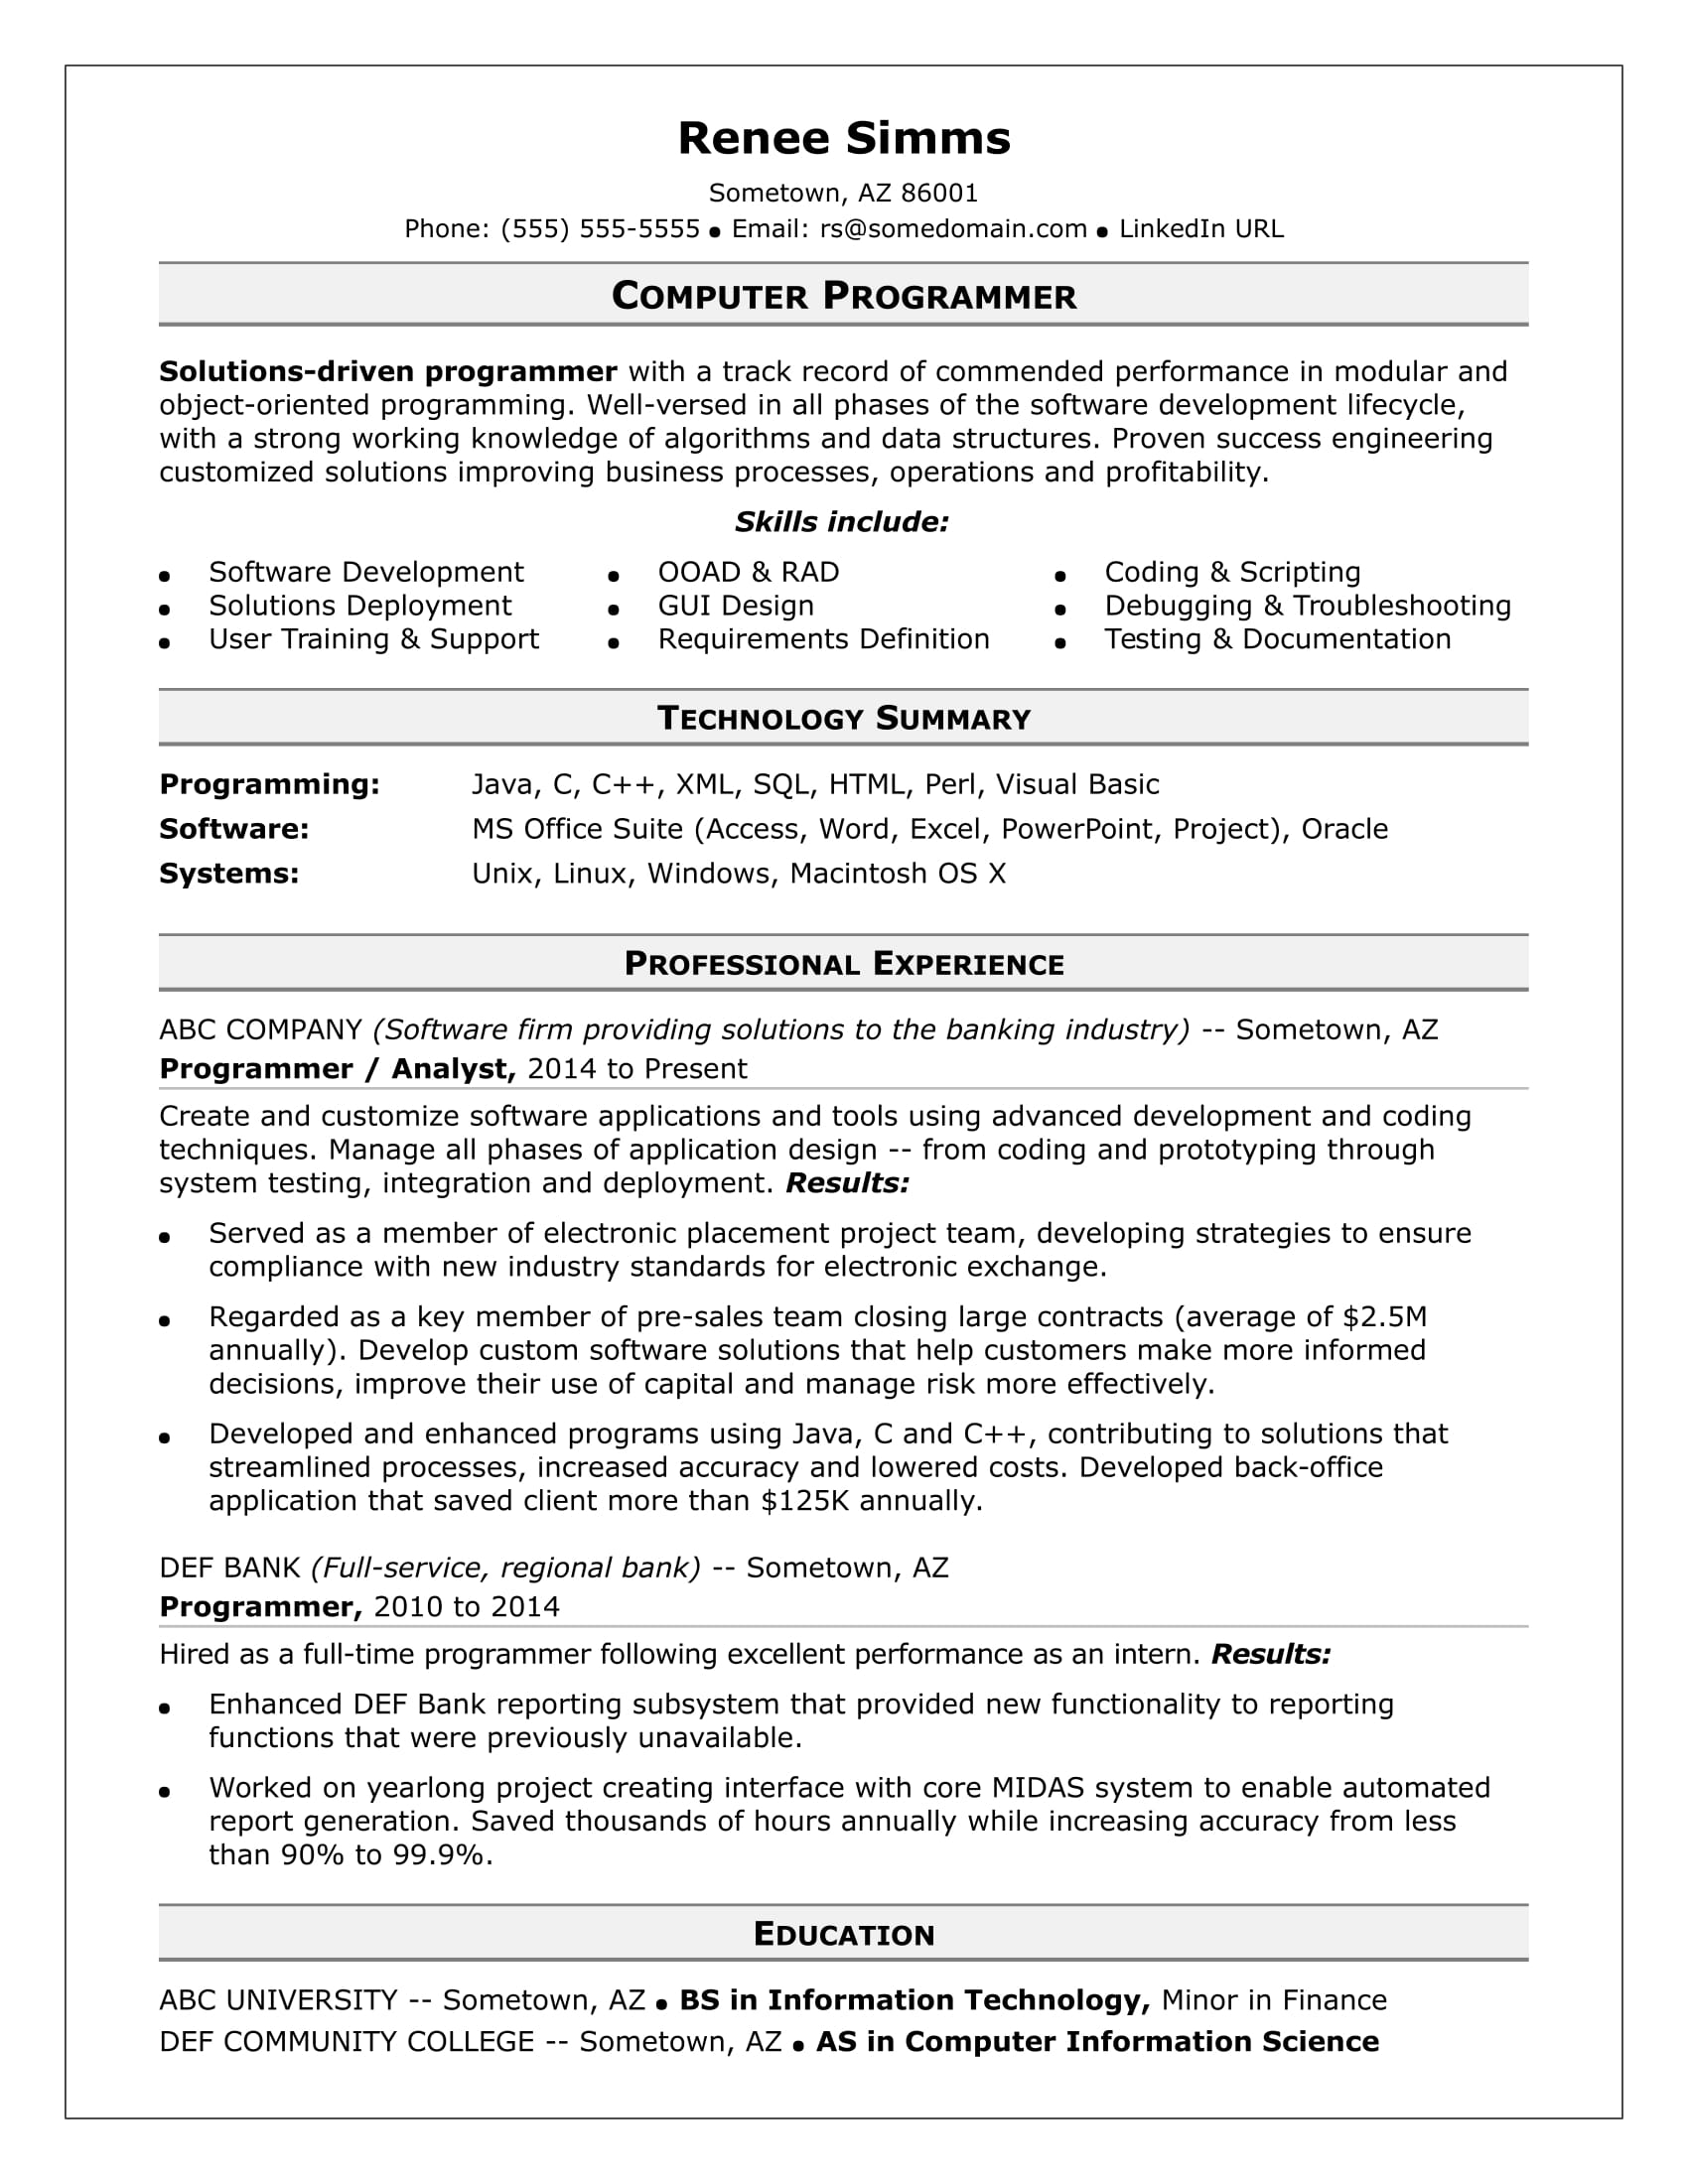 resume Programmer Resume Format sample resume for a midlevel computer programmer monster com programmer